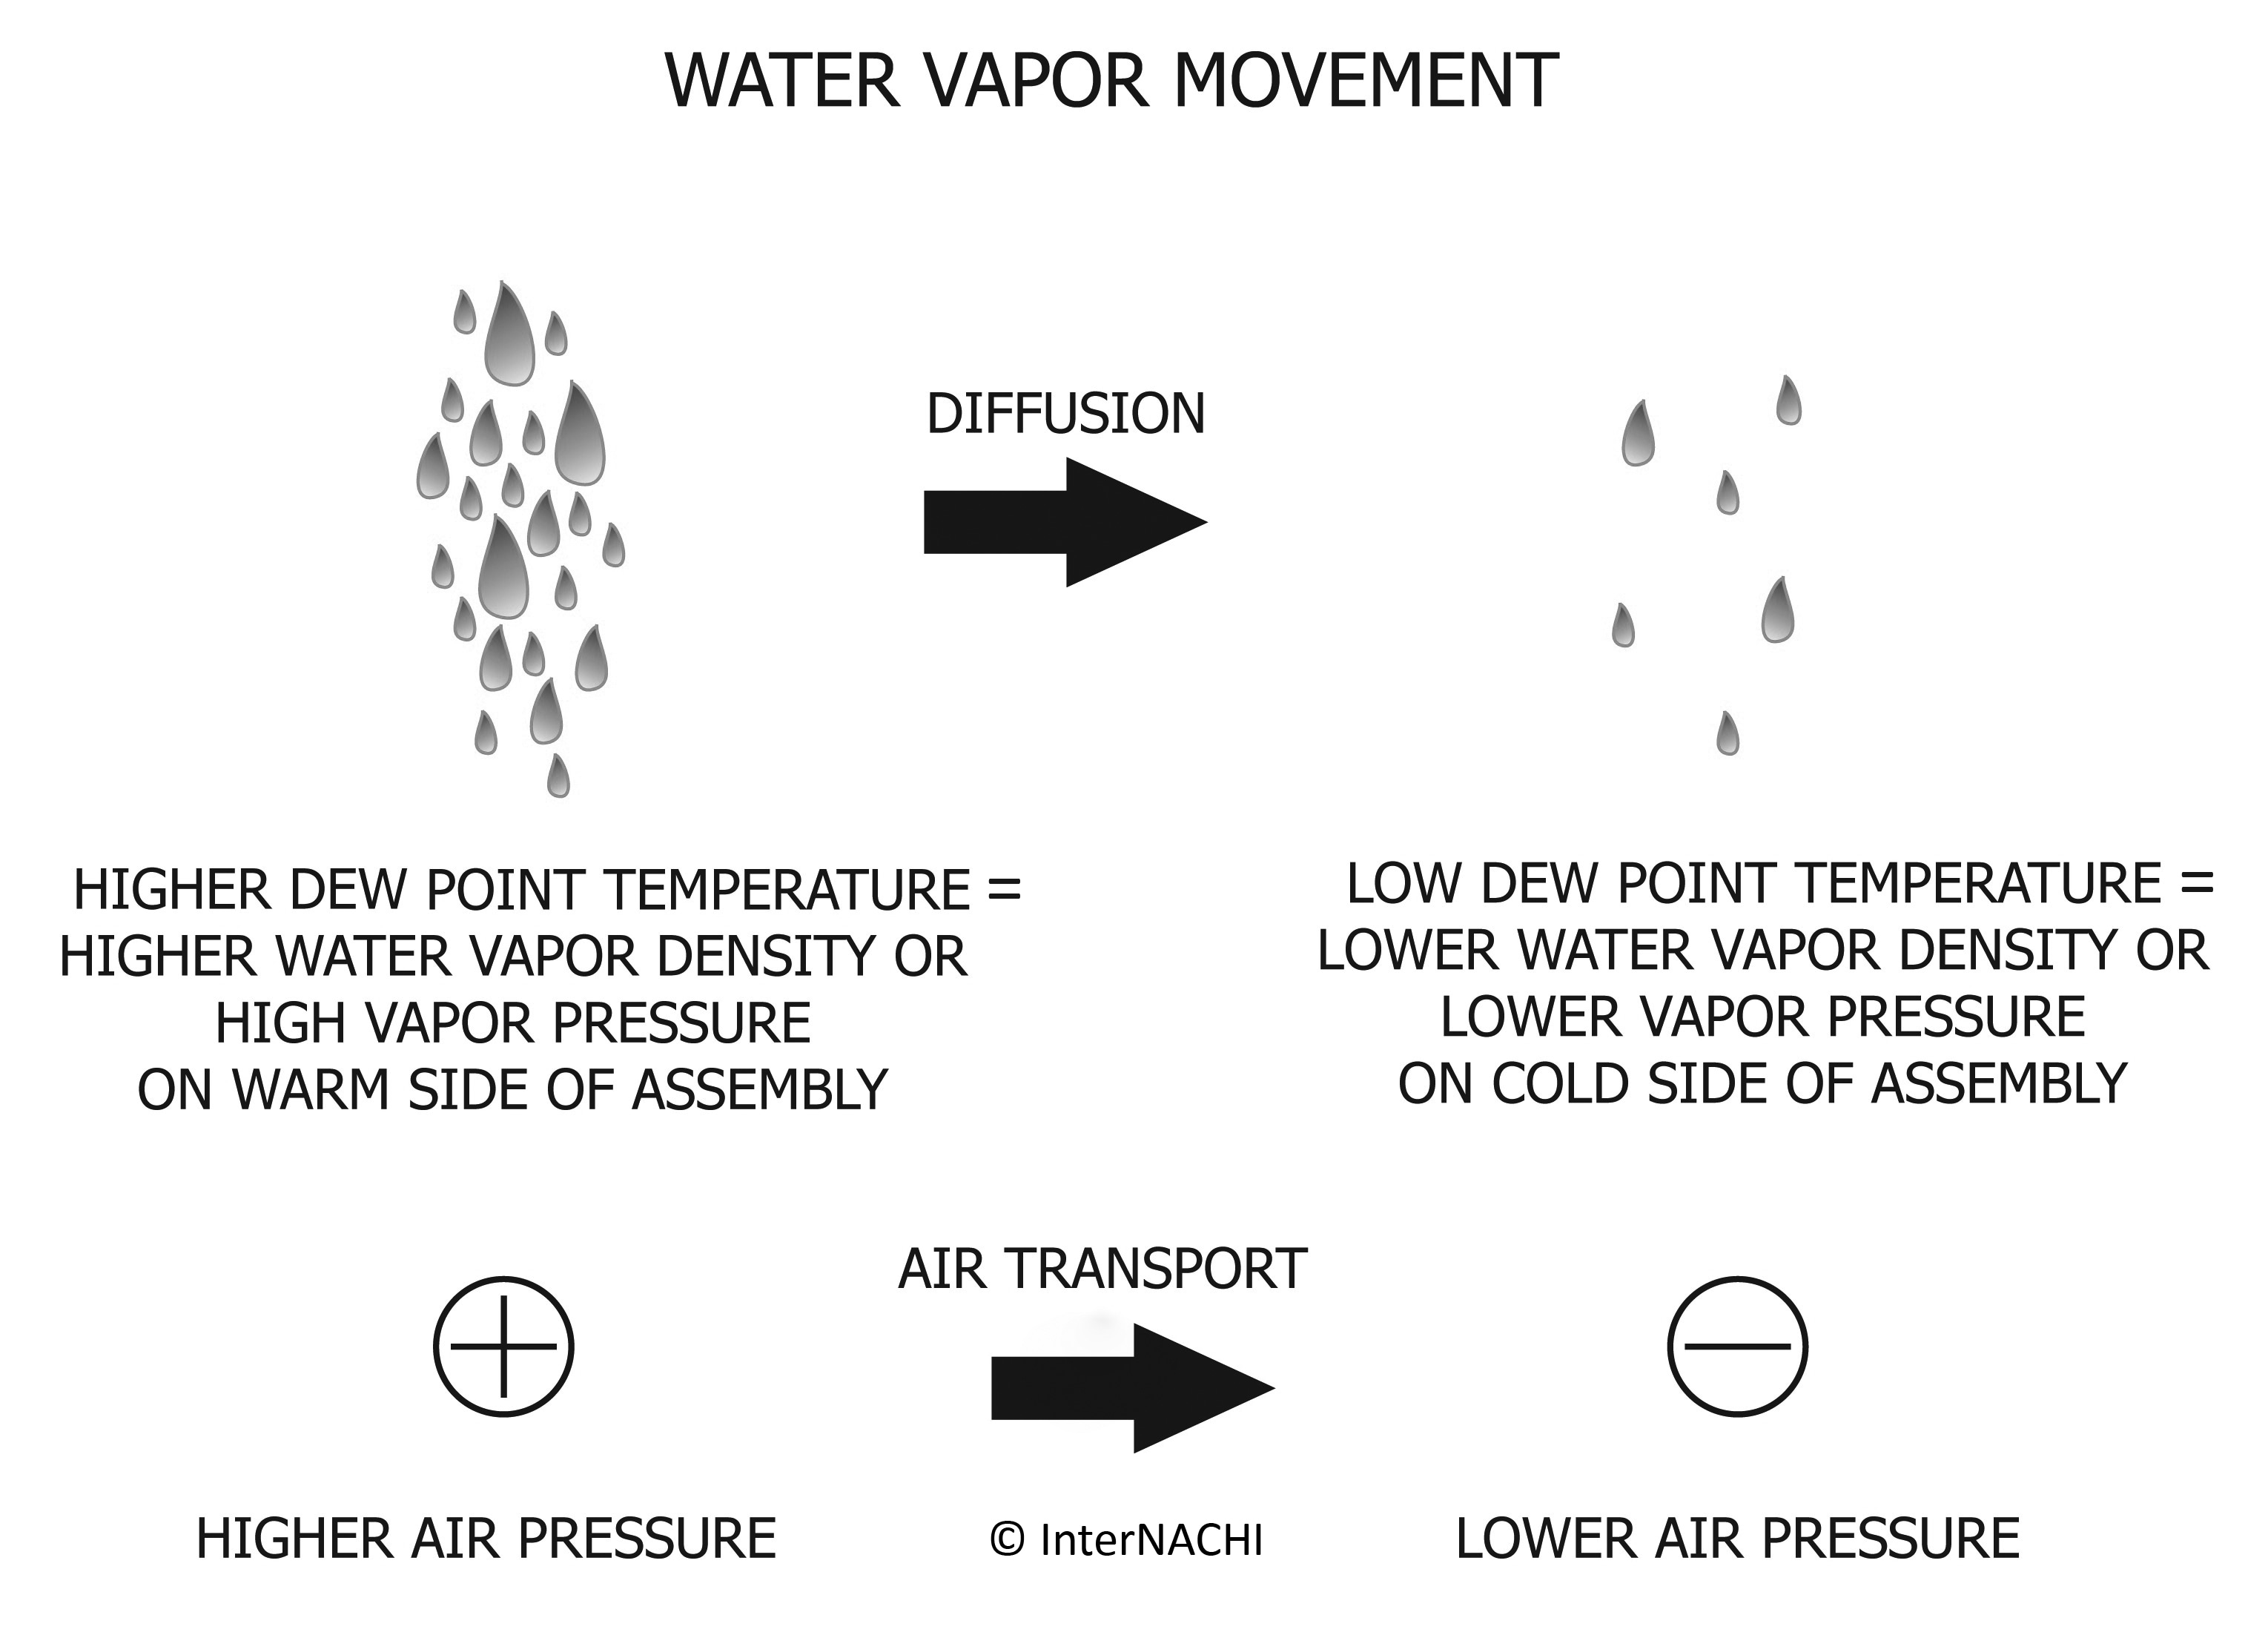 Water vapor movement.